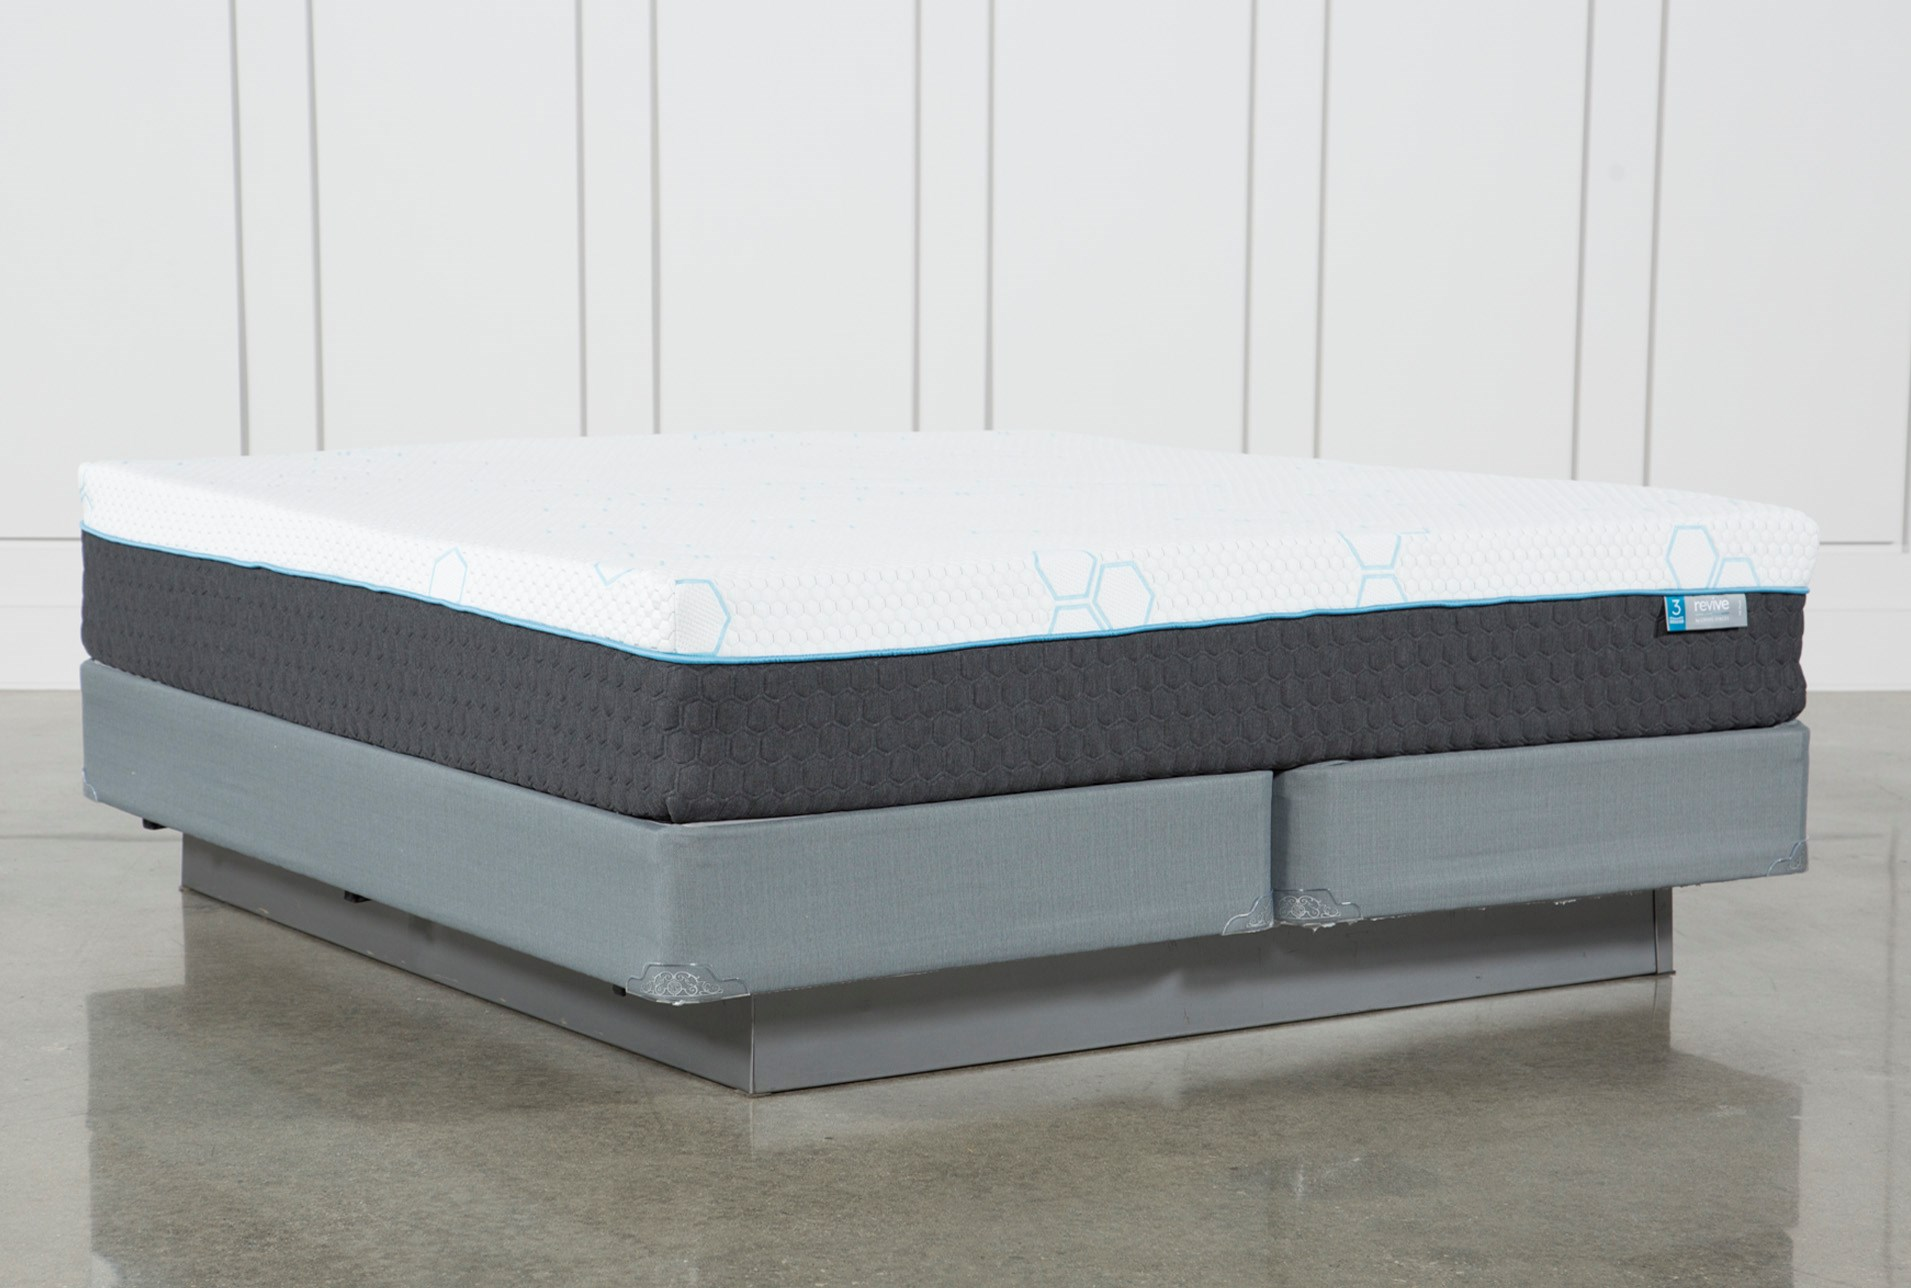 eastern king mattress. H2 Plush Eastern King Mattress W/Foundation (Qty: 1) Has Been Successfully Added To Your Cart.